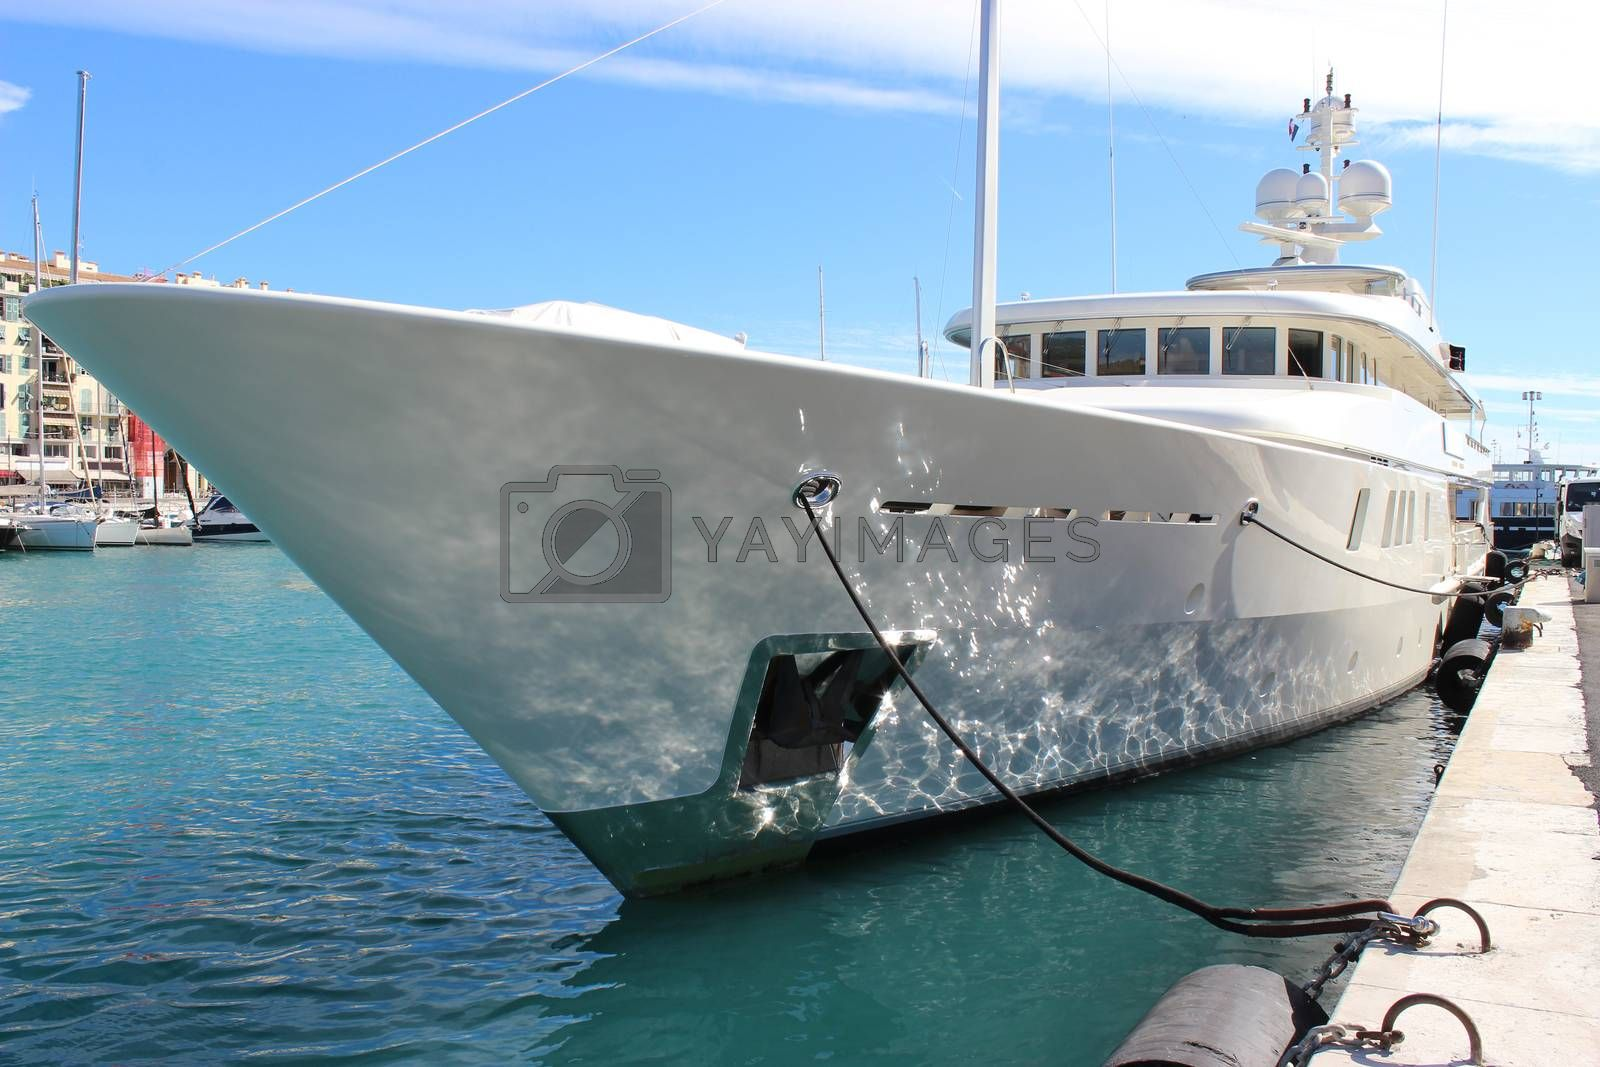 Beautiful and luxurious yacht in the port of Nice